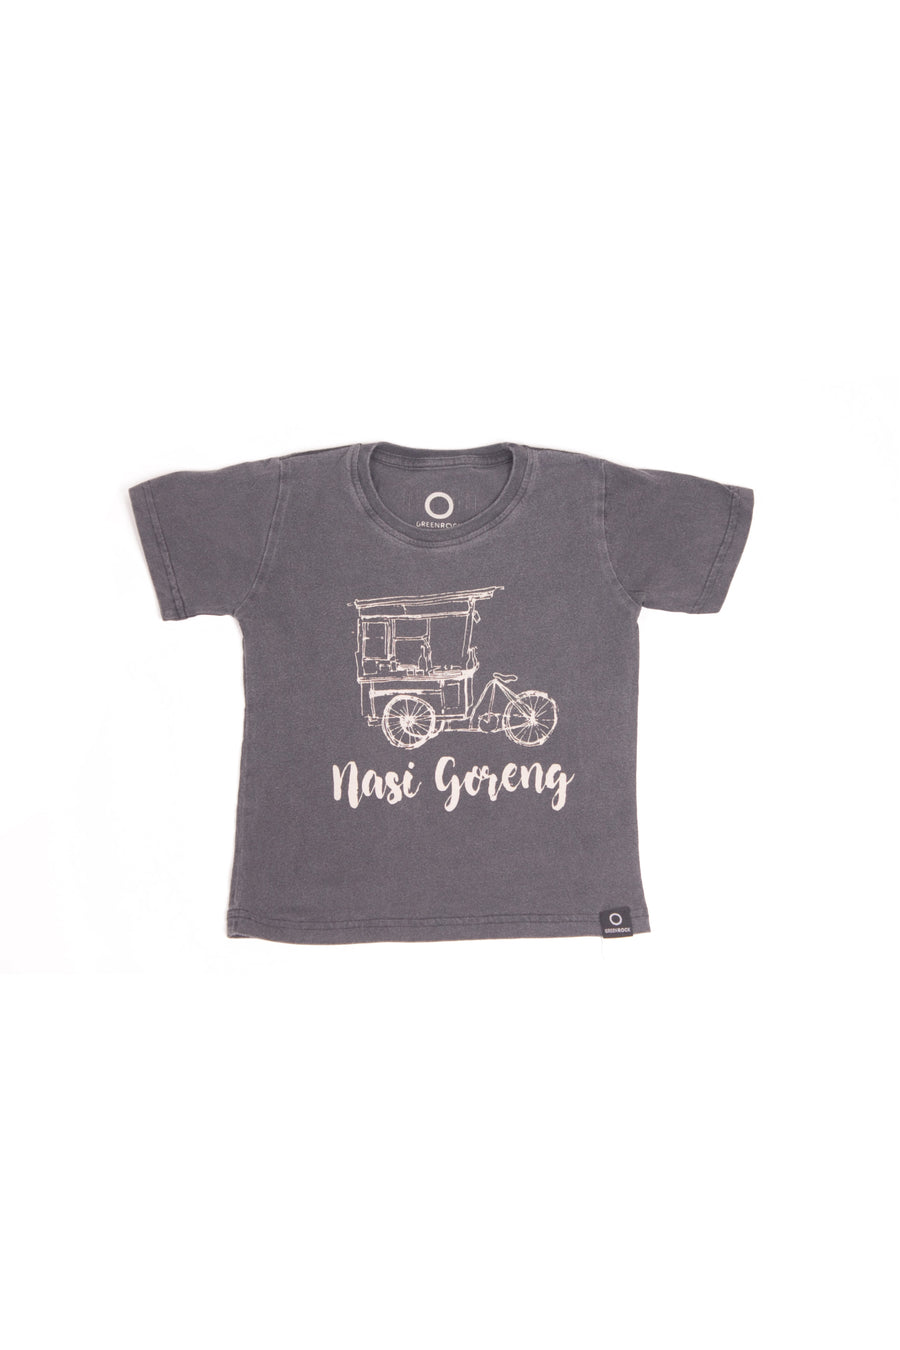 T-Shirt Kids Nasi Goreng Black Wash - Greenrock Indonesia